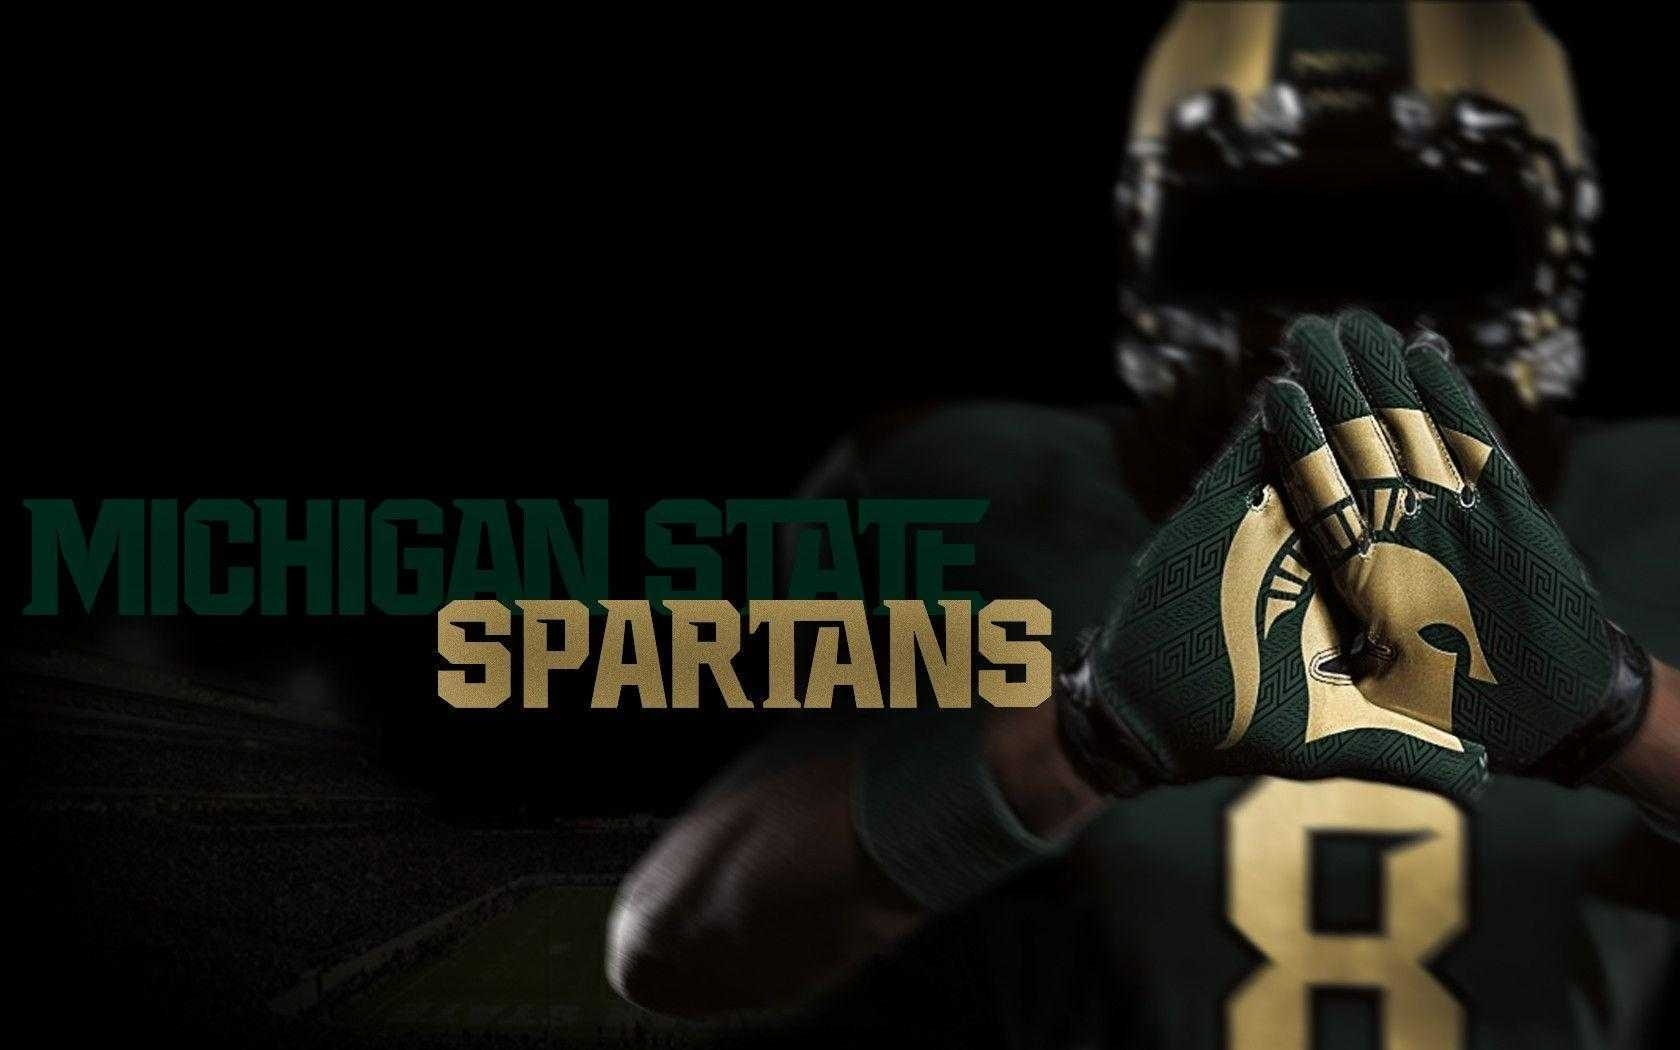 michigan state wallpaper hd backgrounds spartans football of mobile